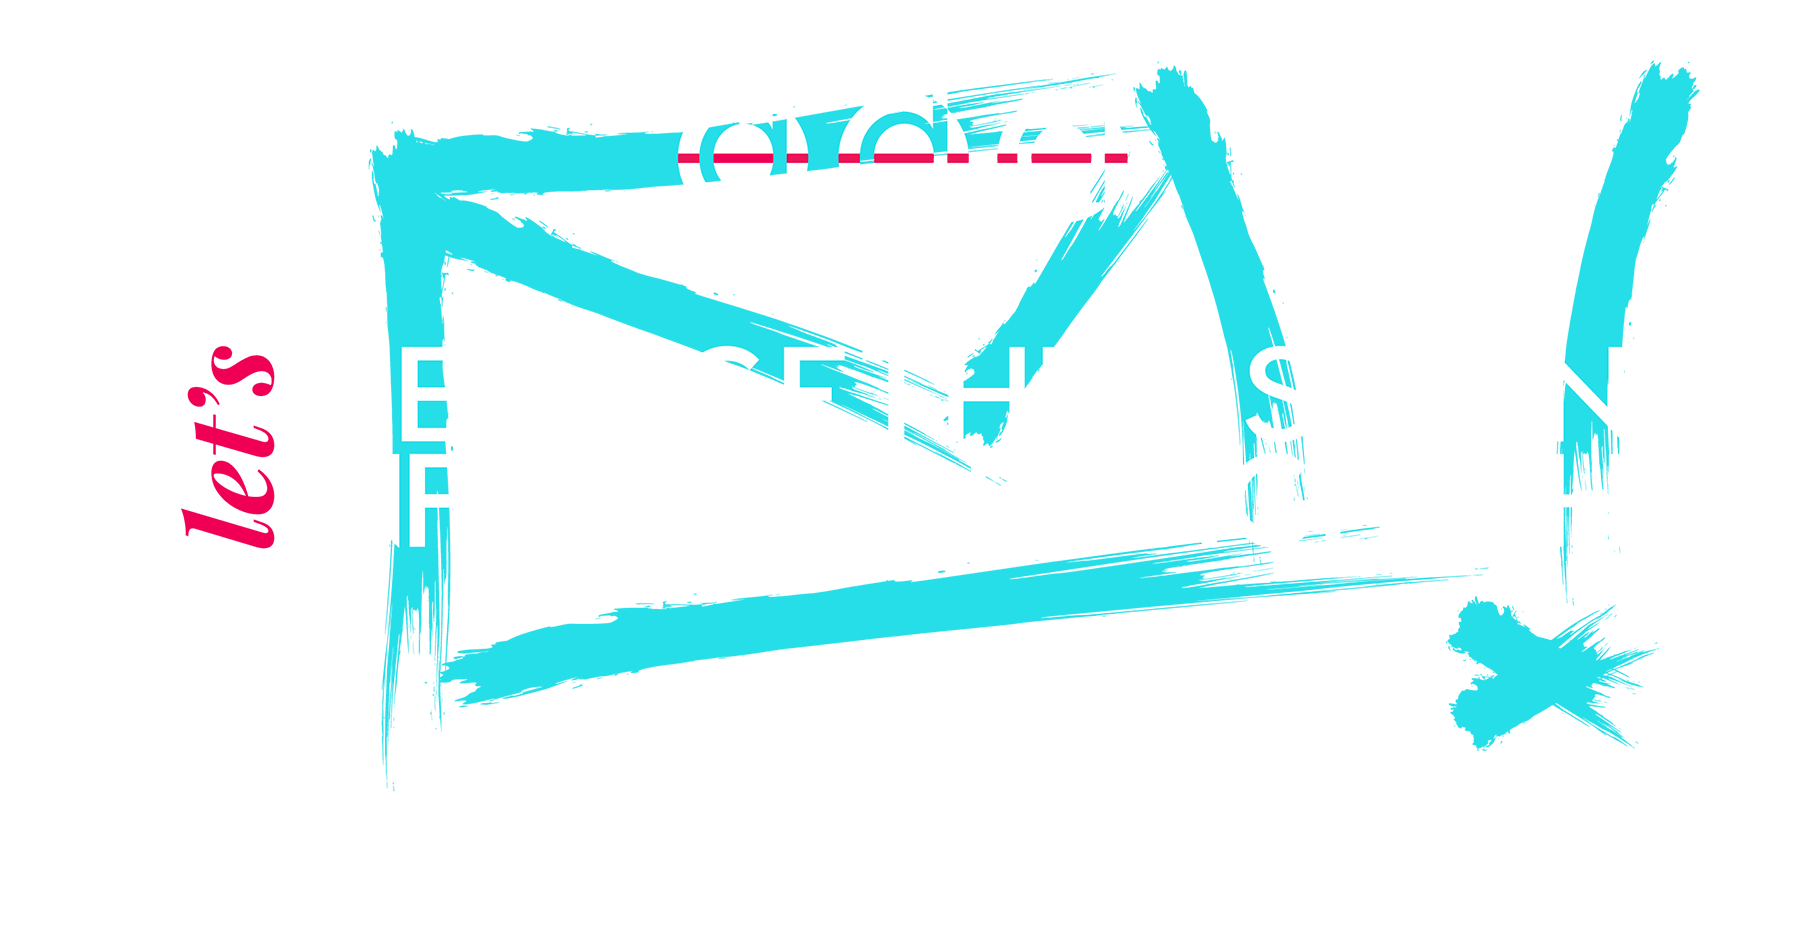 qda design let's get connected overlay image